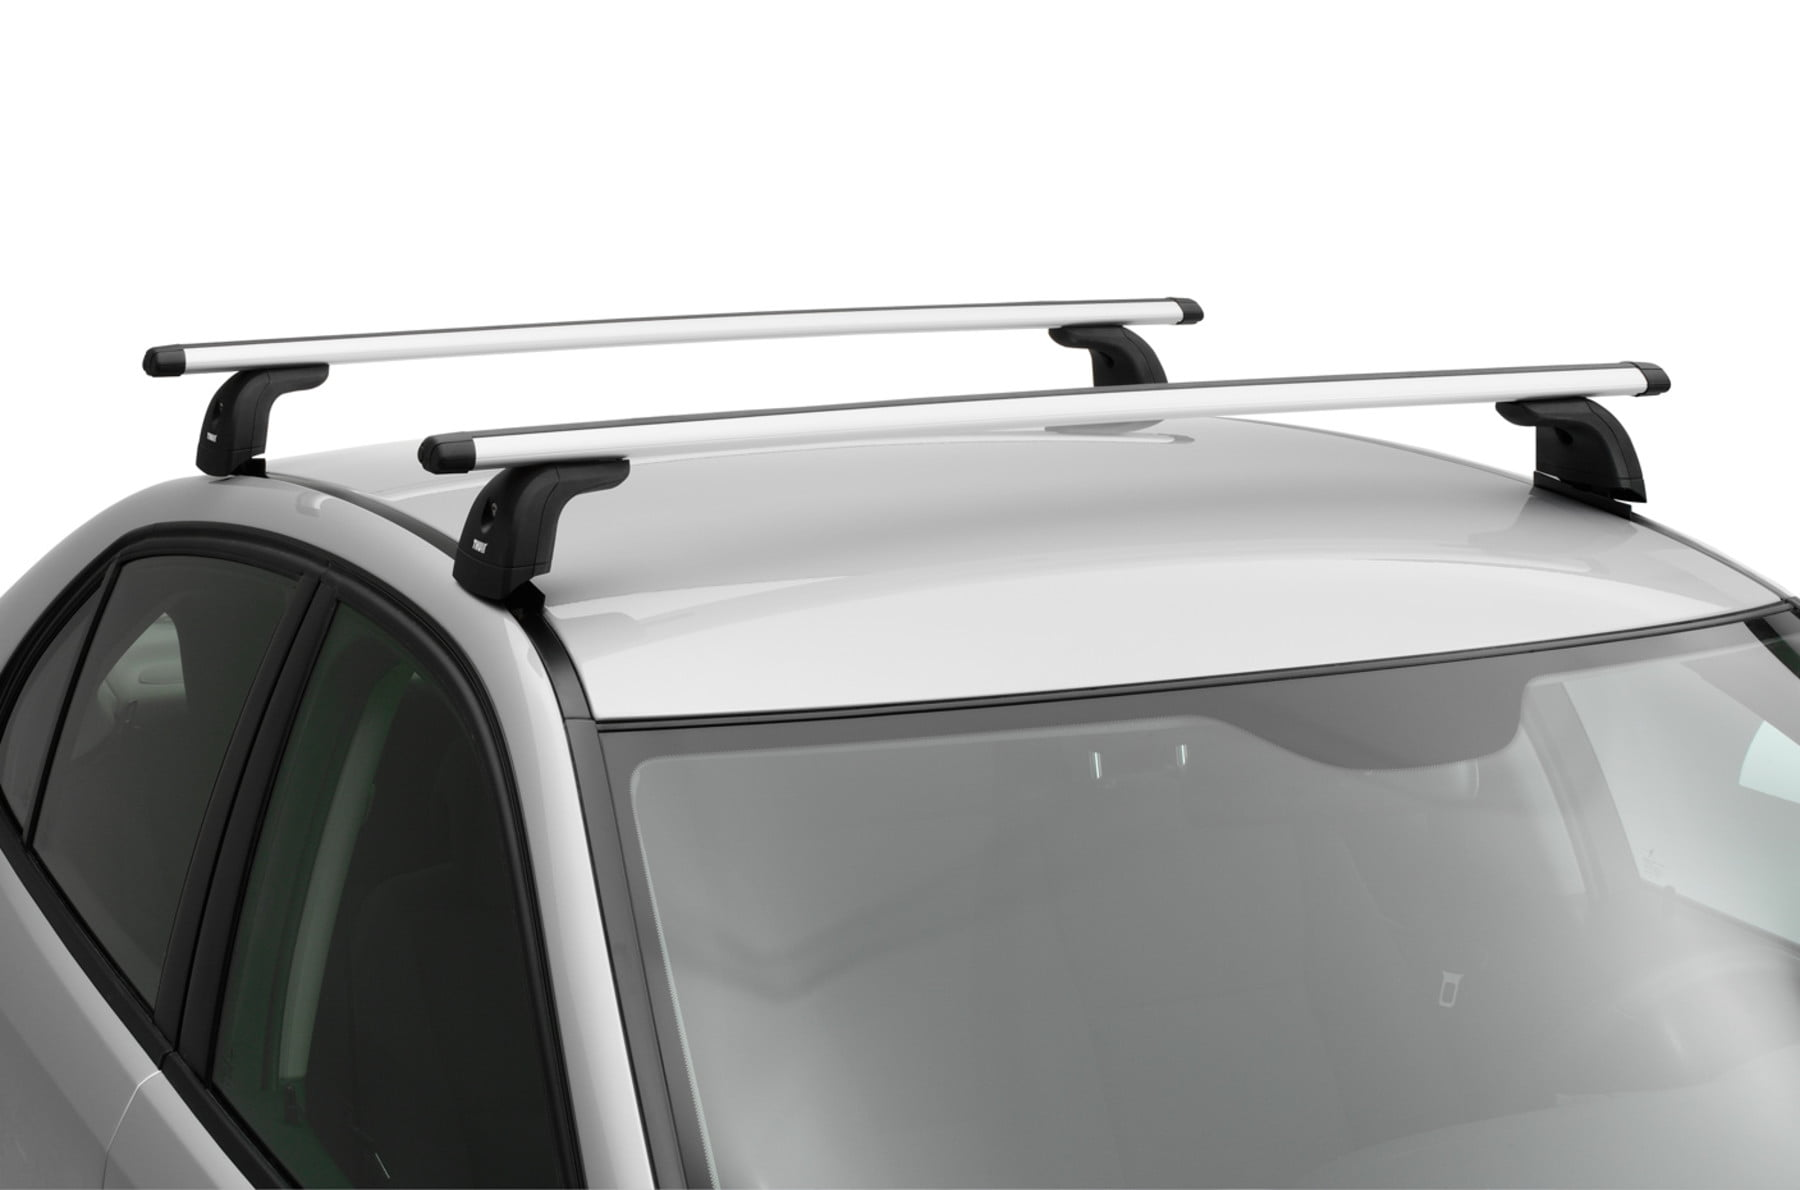 Thule Rapid System 751 2